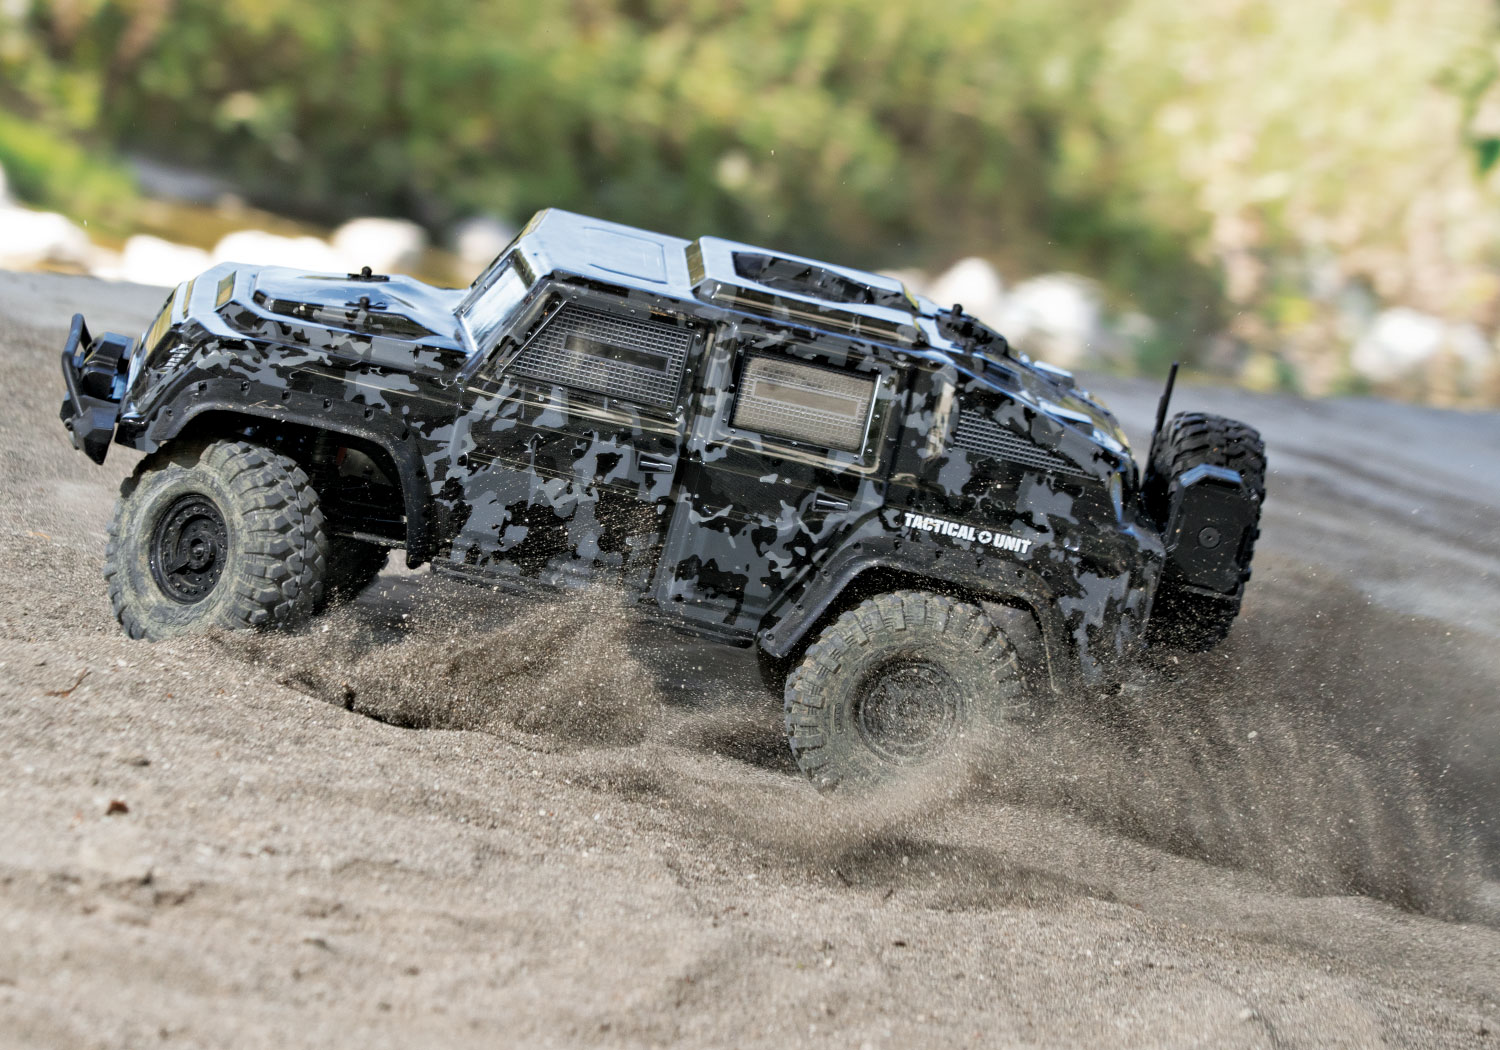 Traxxas TRX-4 Tactical Unit 82066-4-Tactical-Outdoor-04